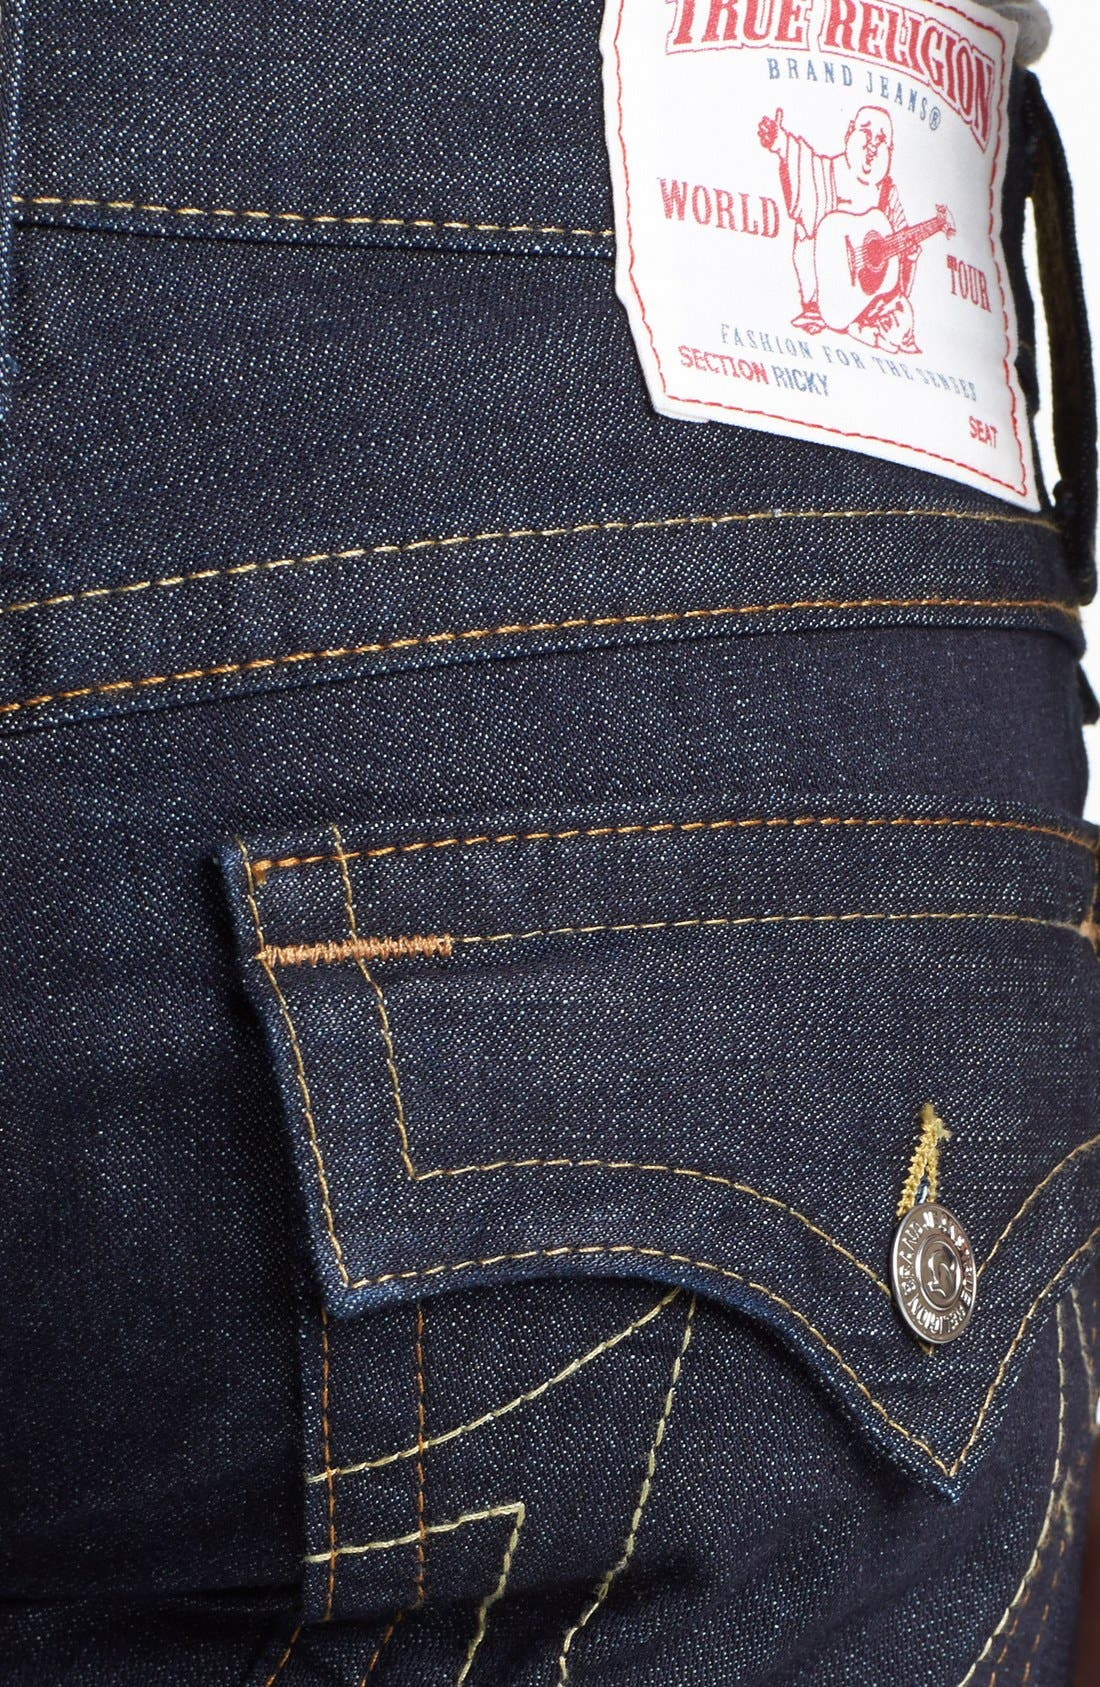 Alternate Image 4  - True Religion Brand Jeans 'Ricky' Relaxed Fit Jeans (Inglorious)